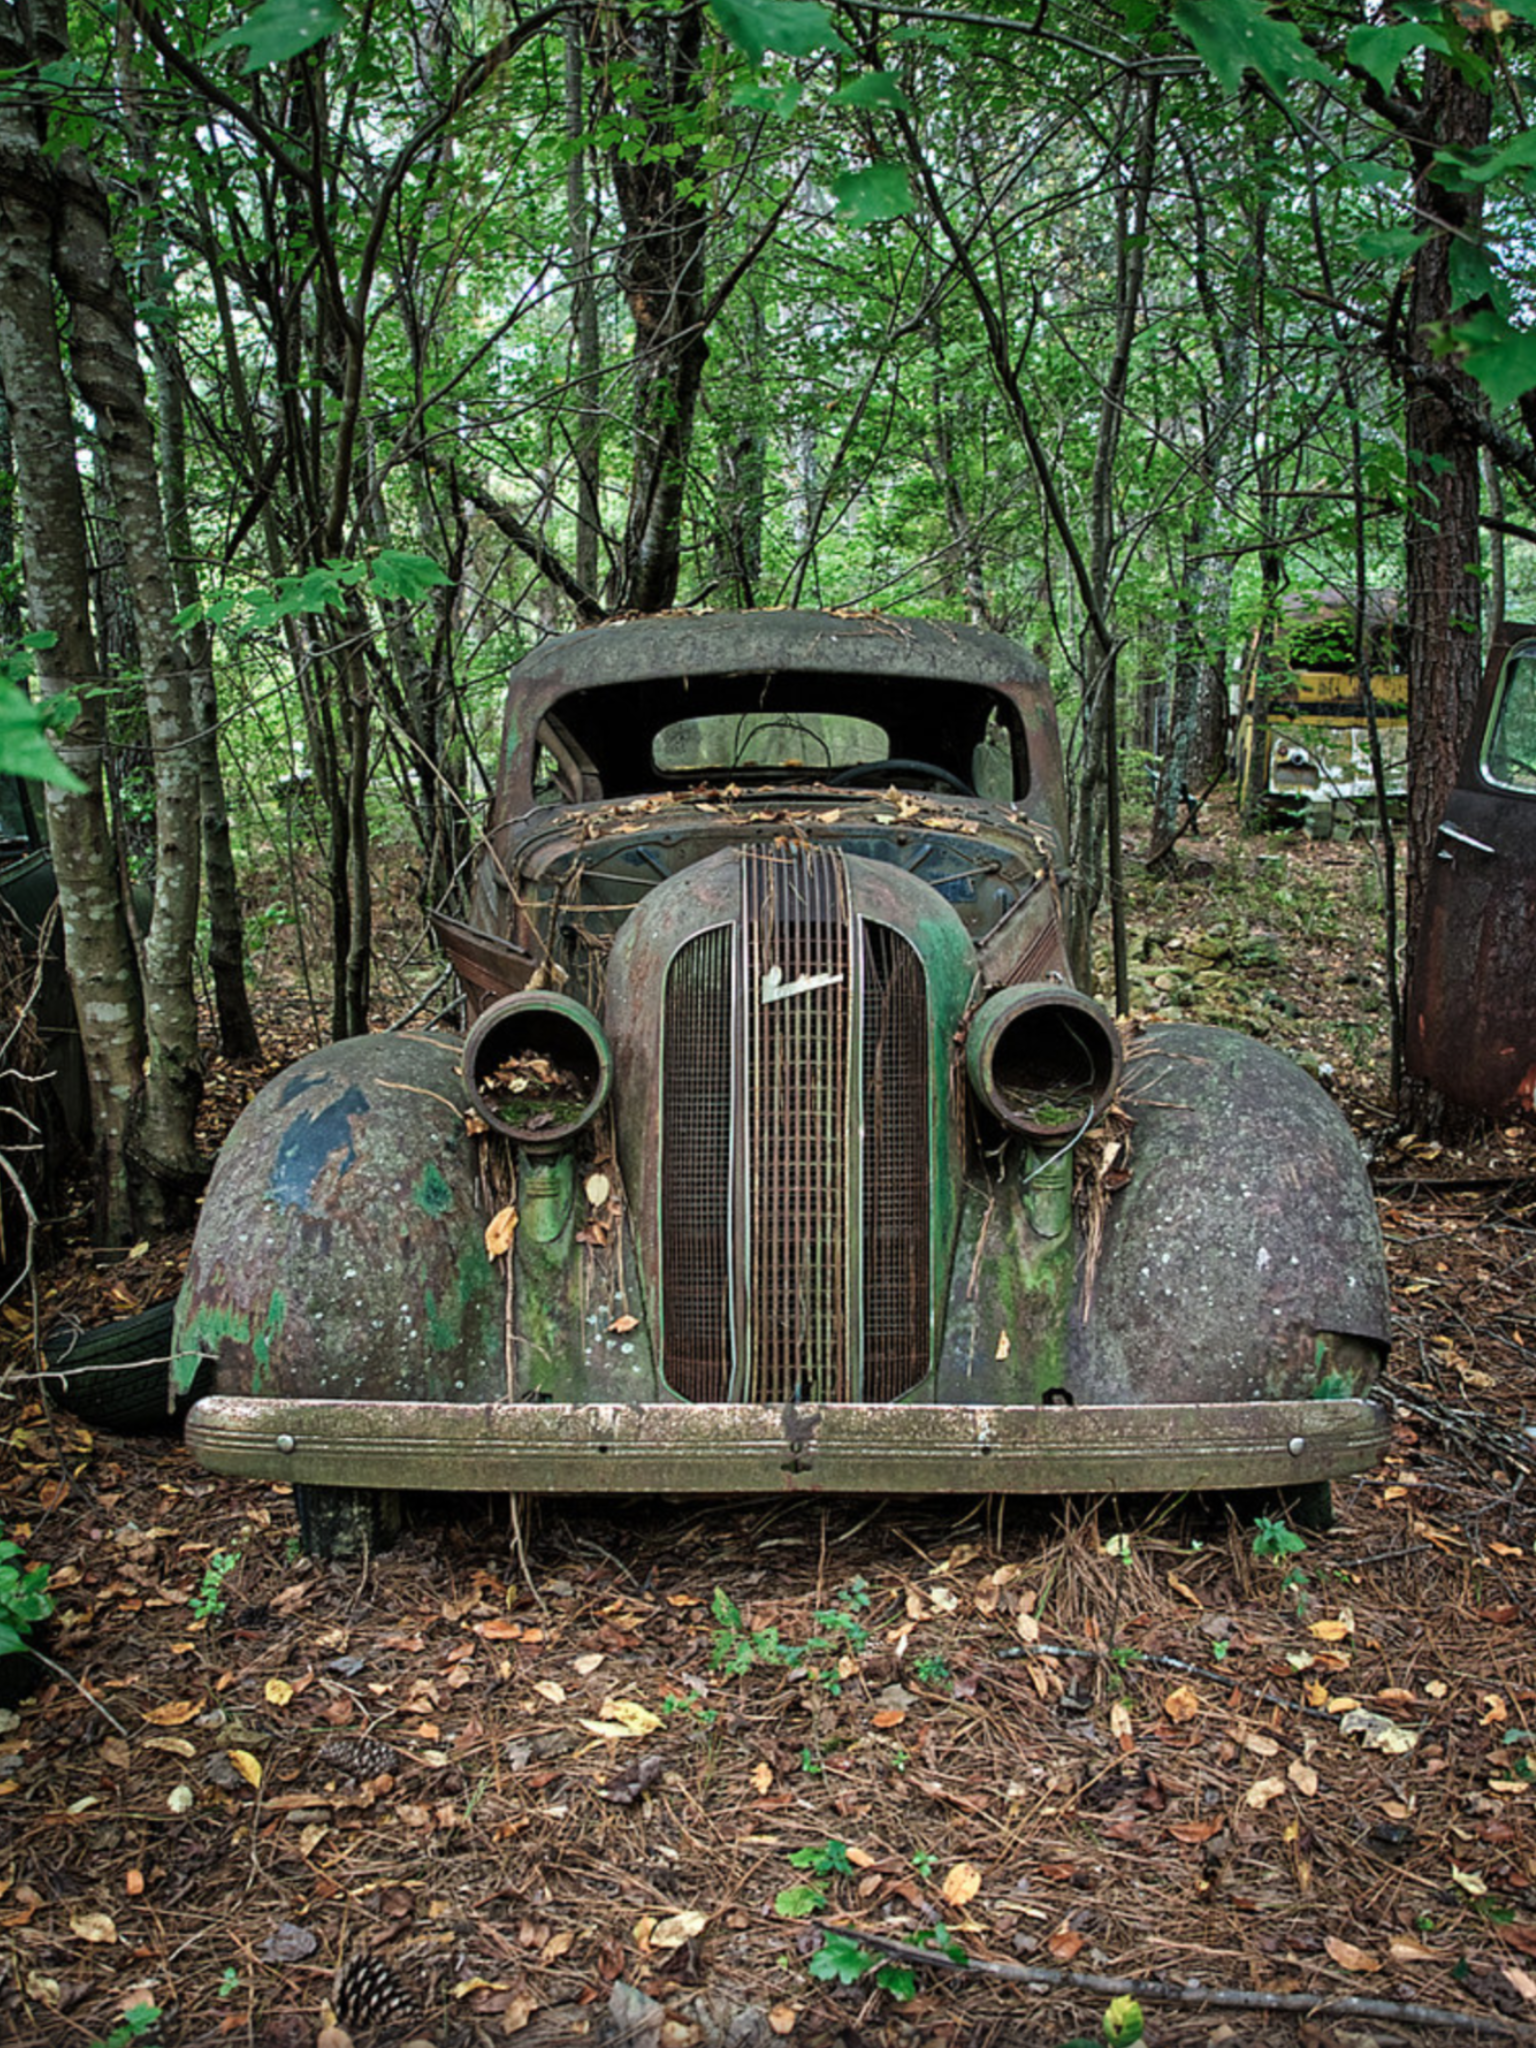 Abandoned Classic Cars : abandoned, classic, Rusty, City,, Georgia., Photo, Kong1933., Source, Flickr.com, Abandoned, Cars,, Classic